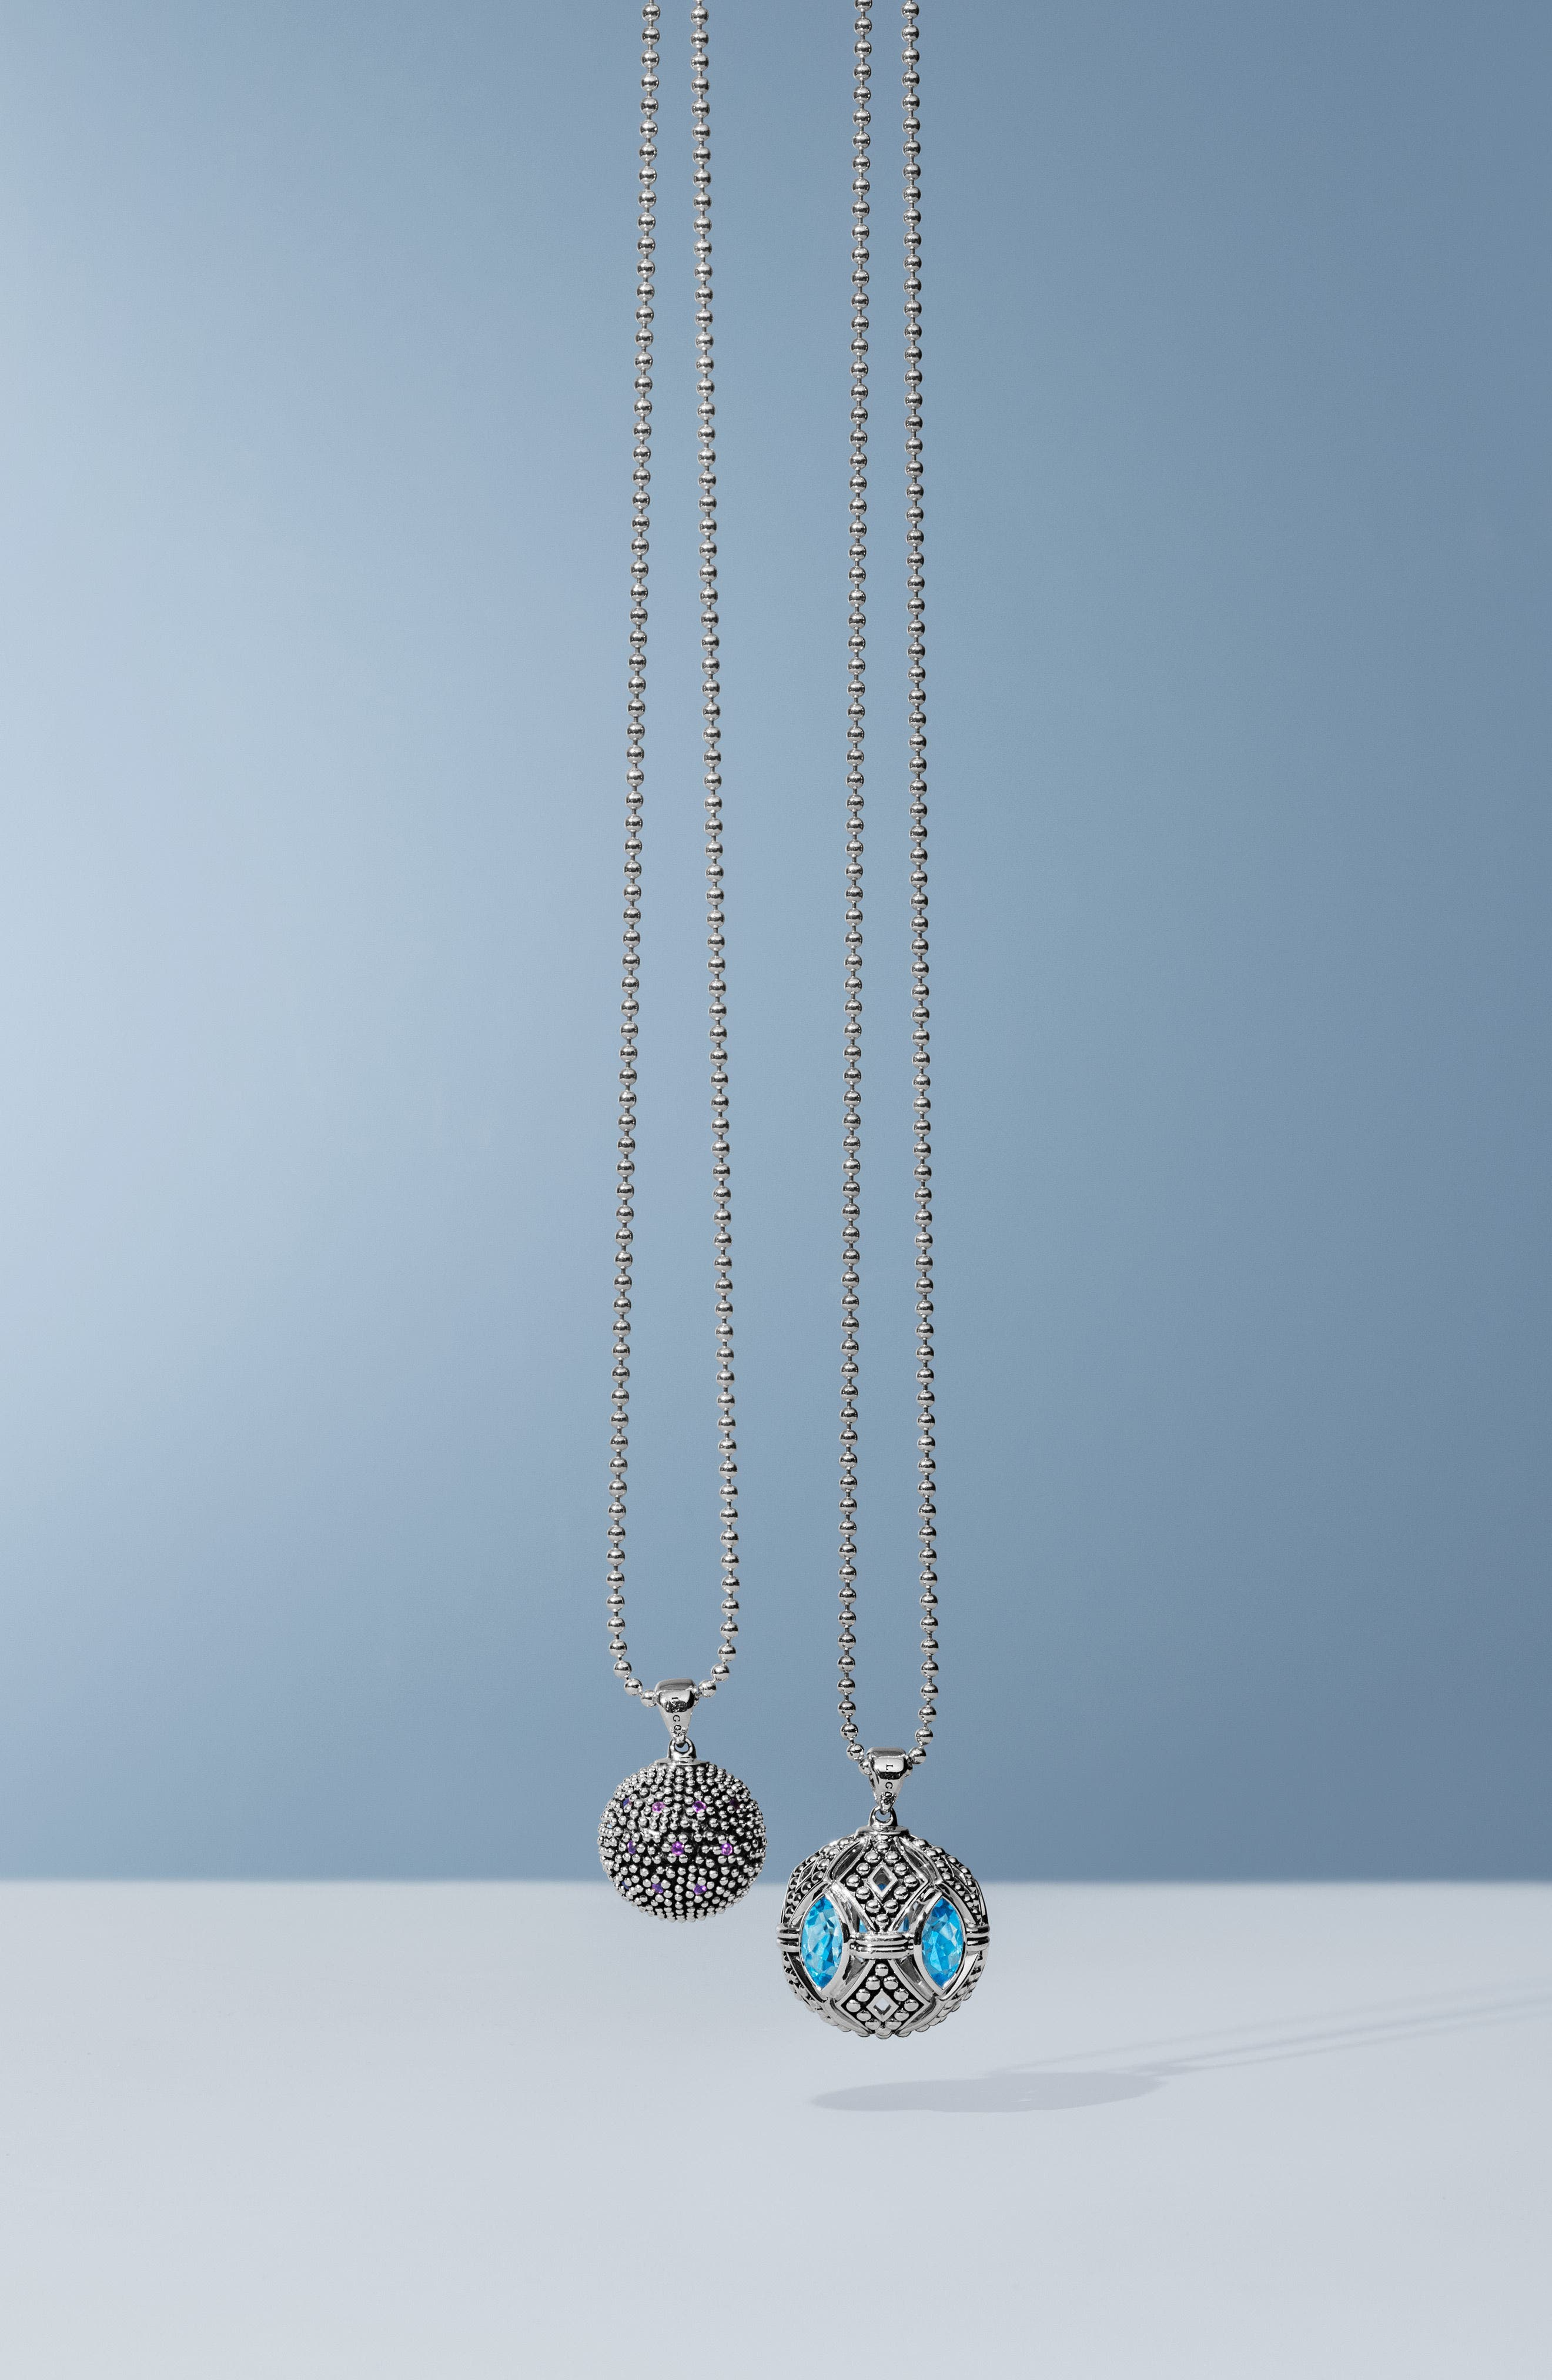 Signature Gifts Marquee Ball Pendant Necklace,                             Alternate thumbnail 3, color,